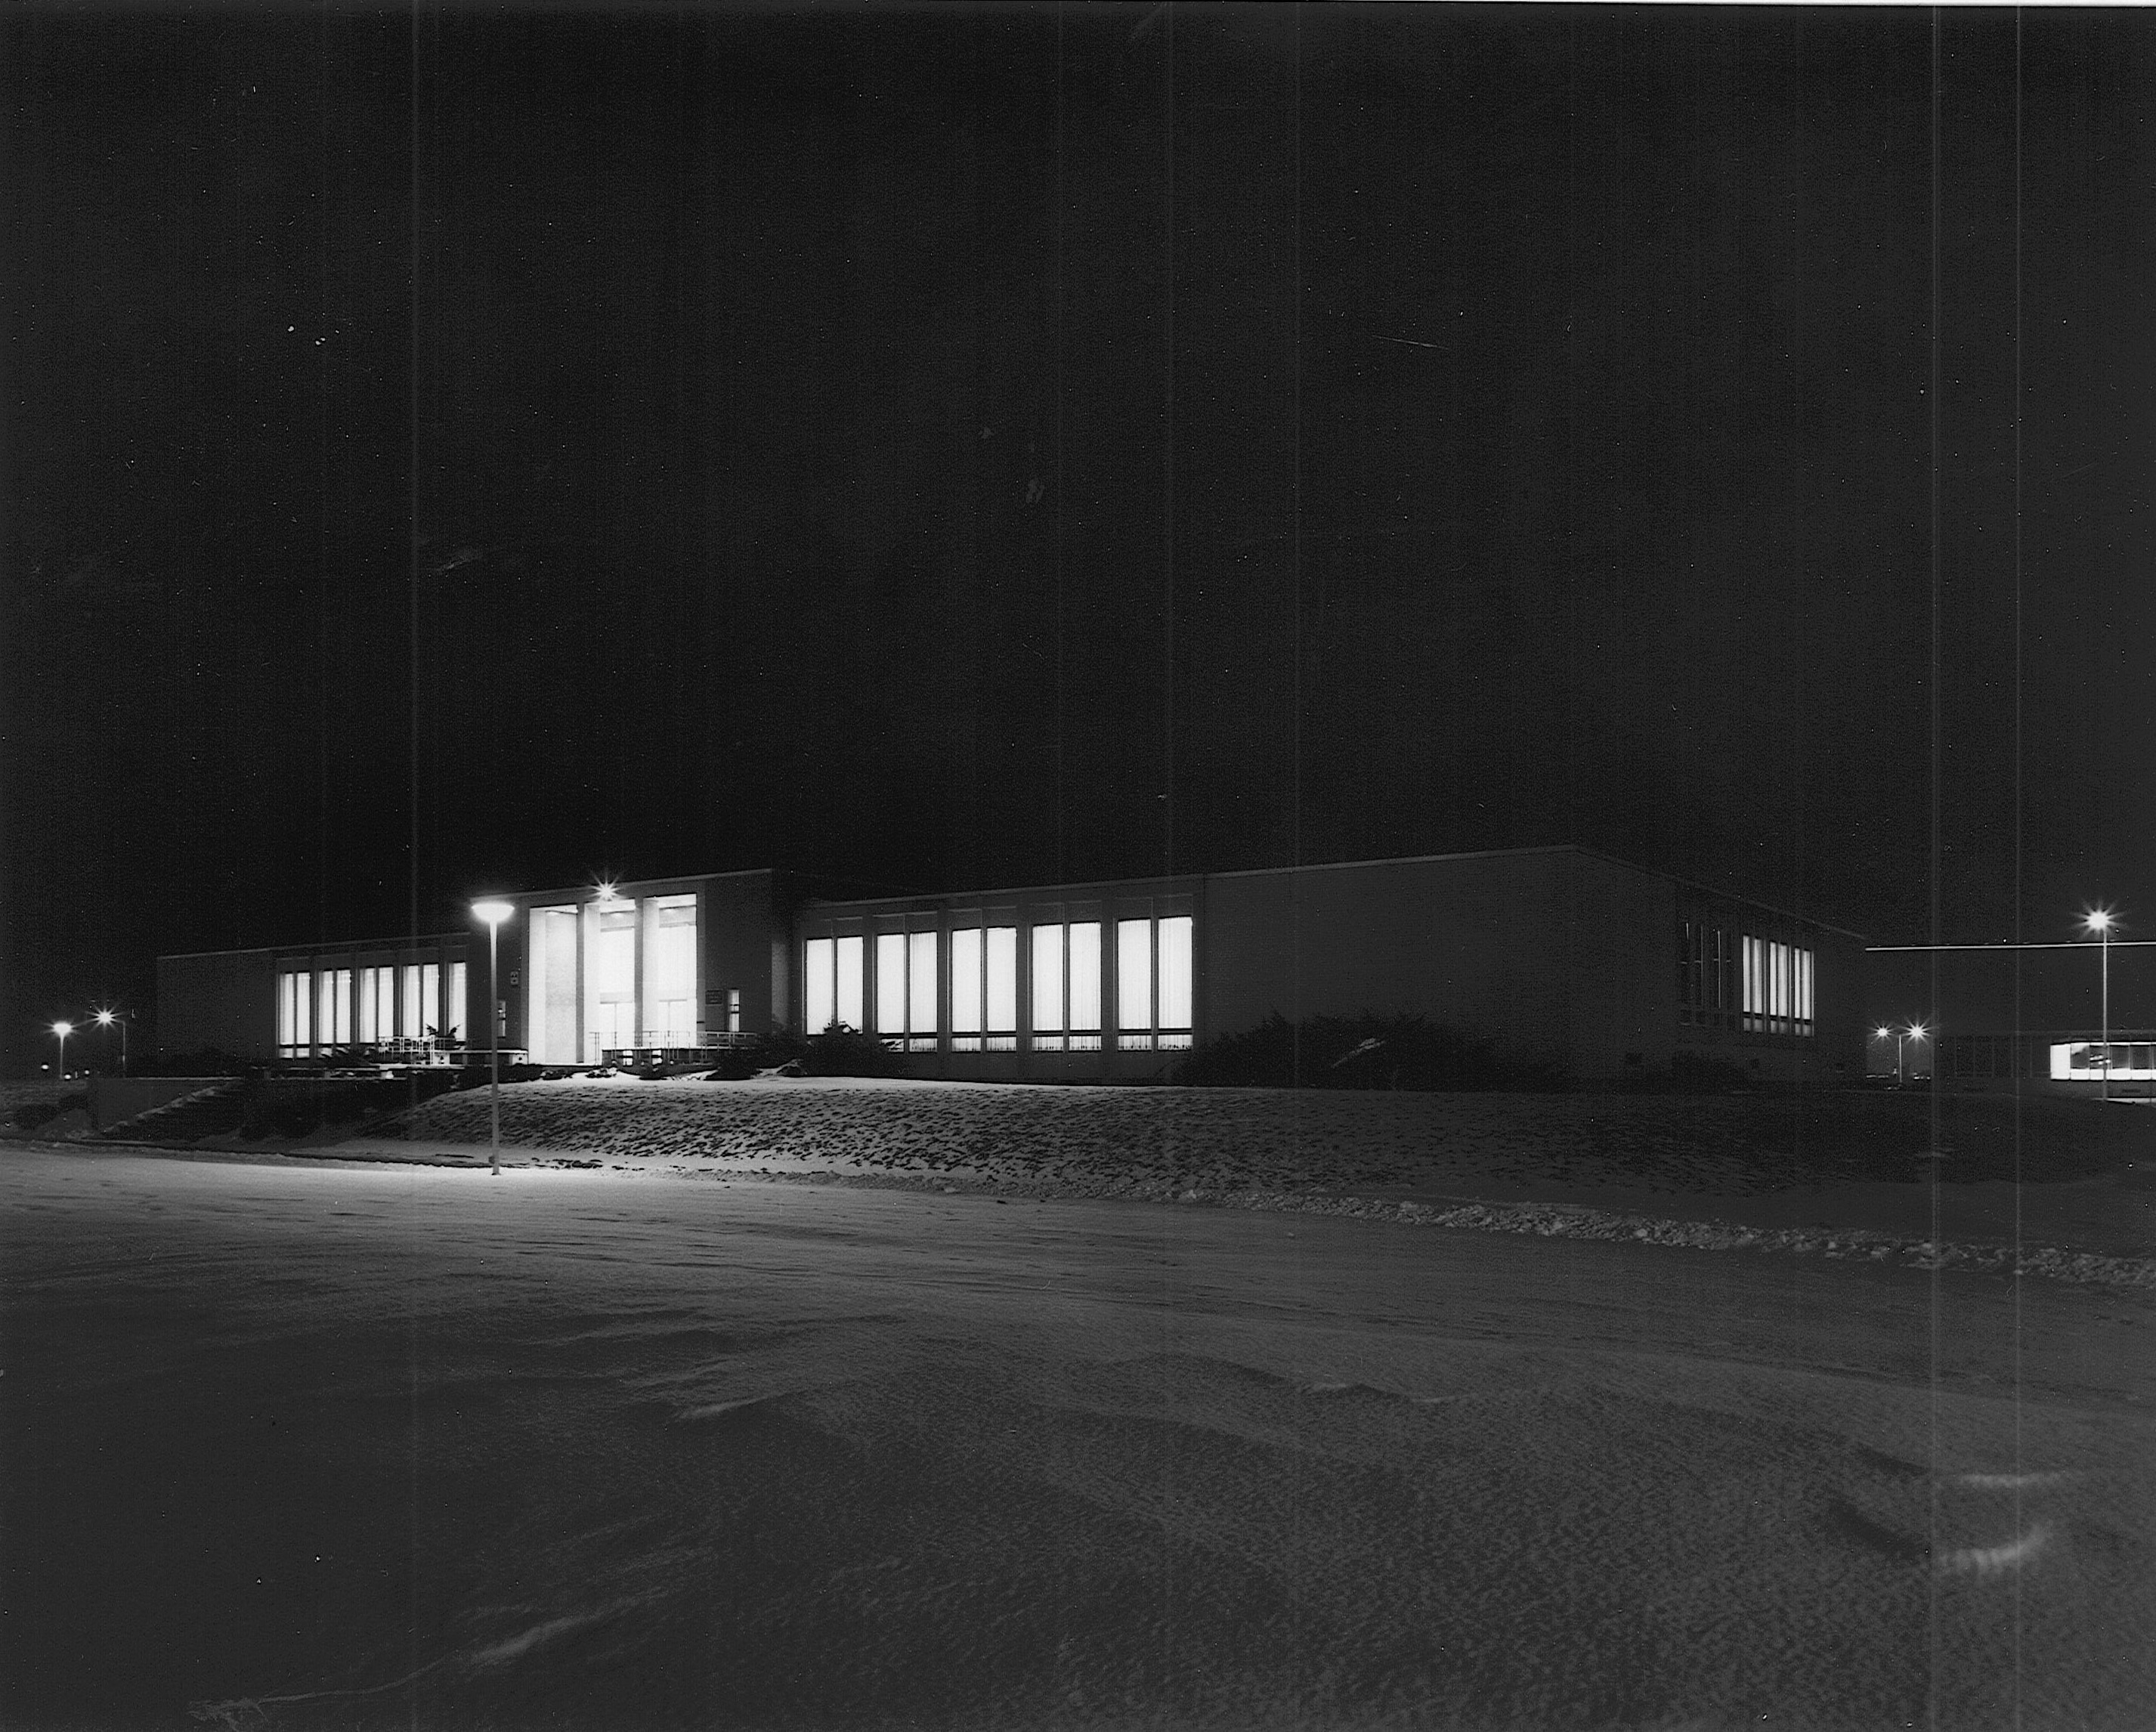 Nighttime photo of the library on North Campus.